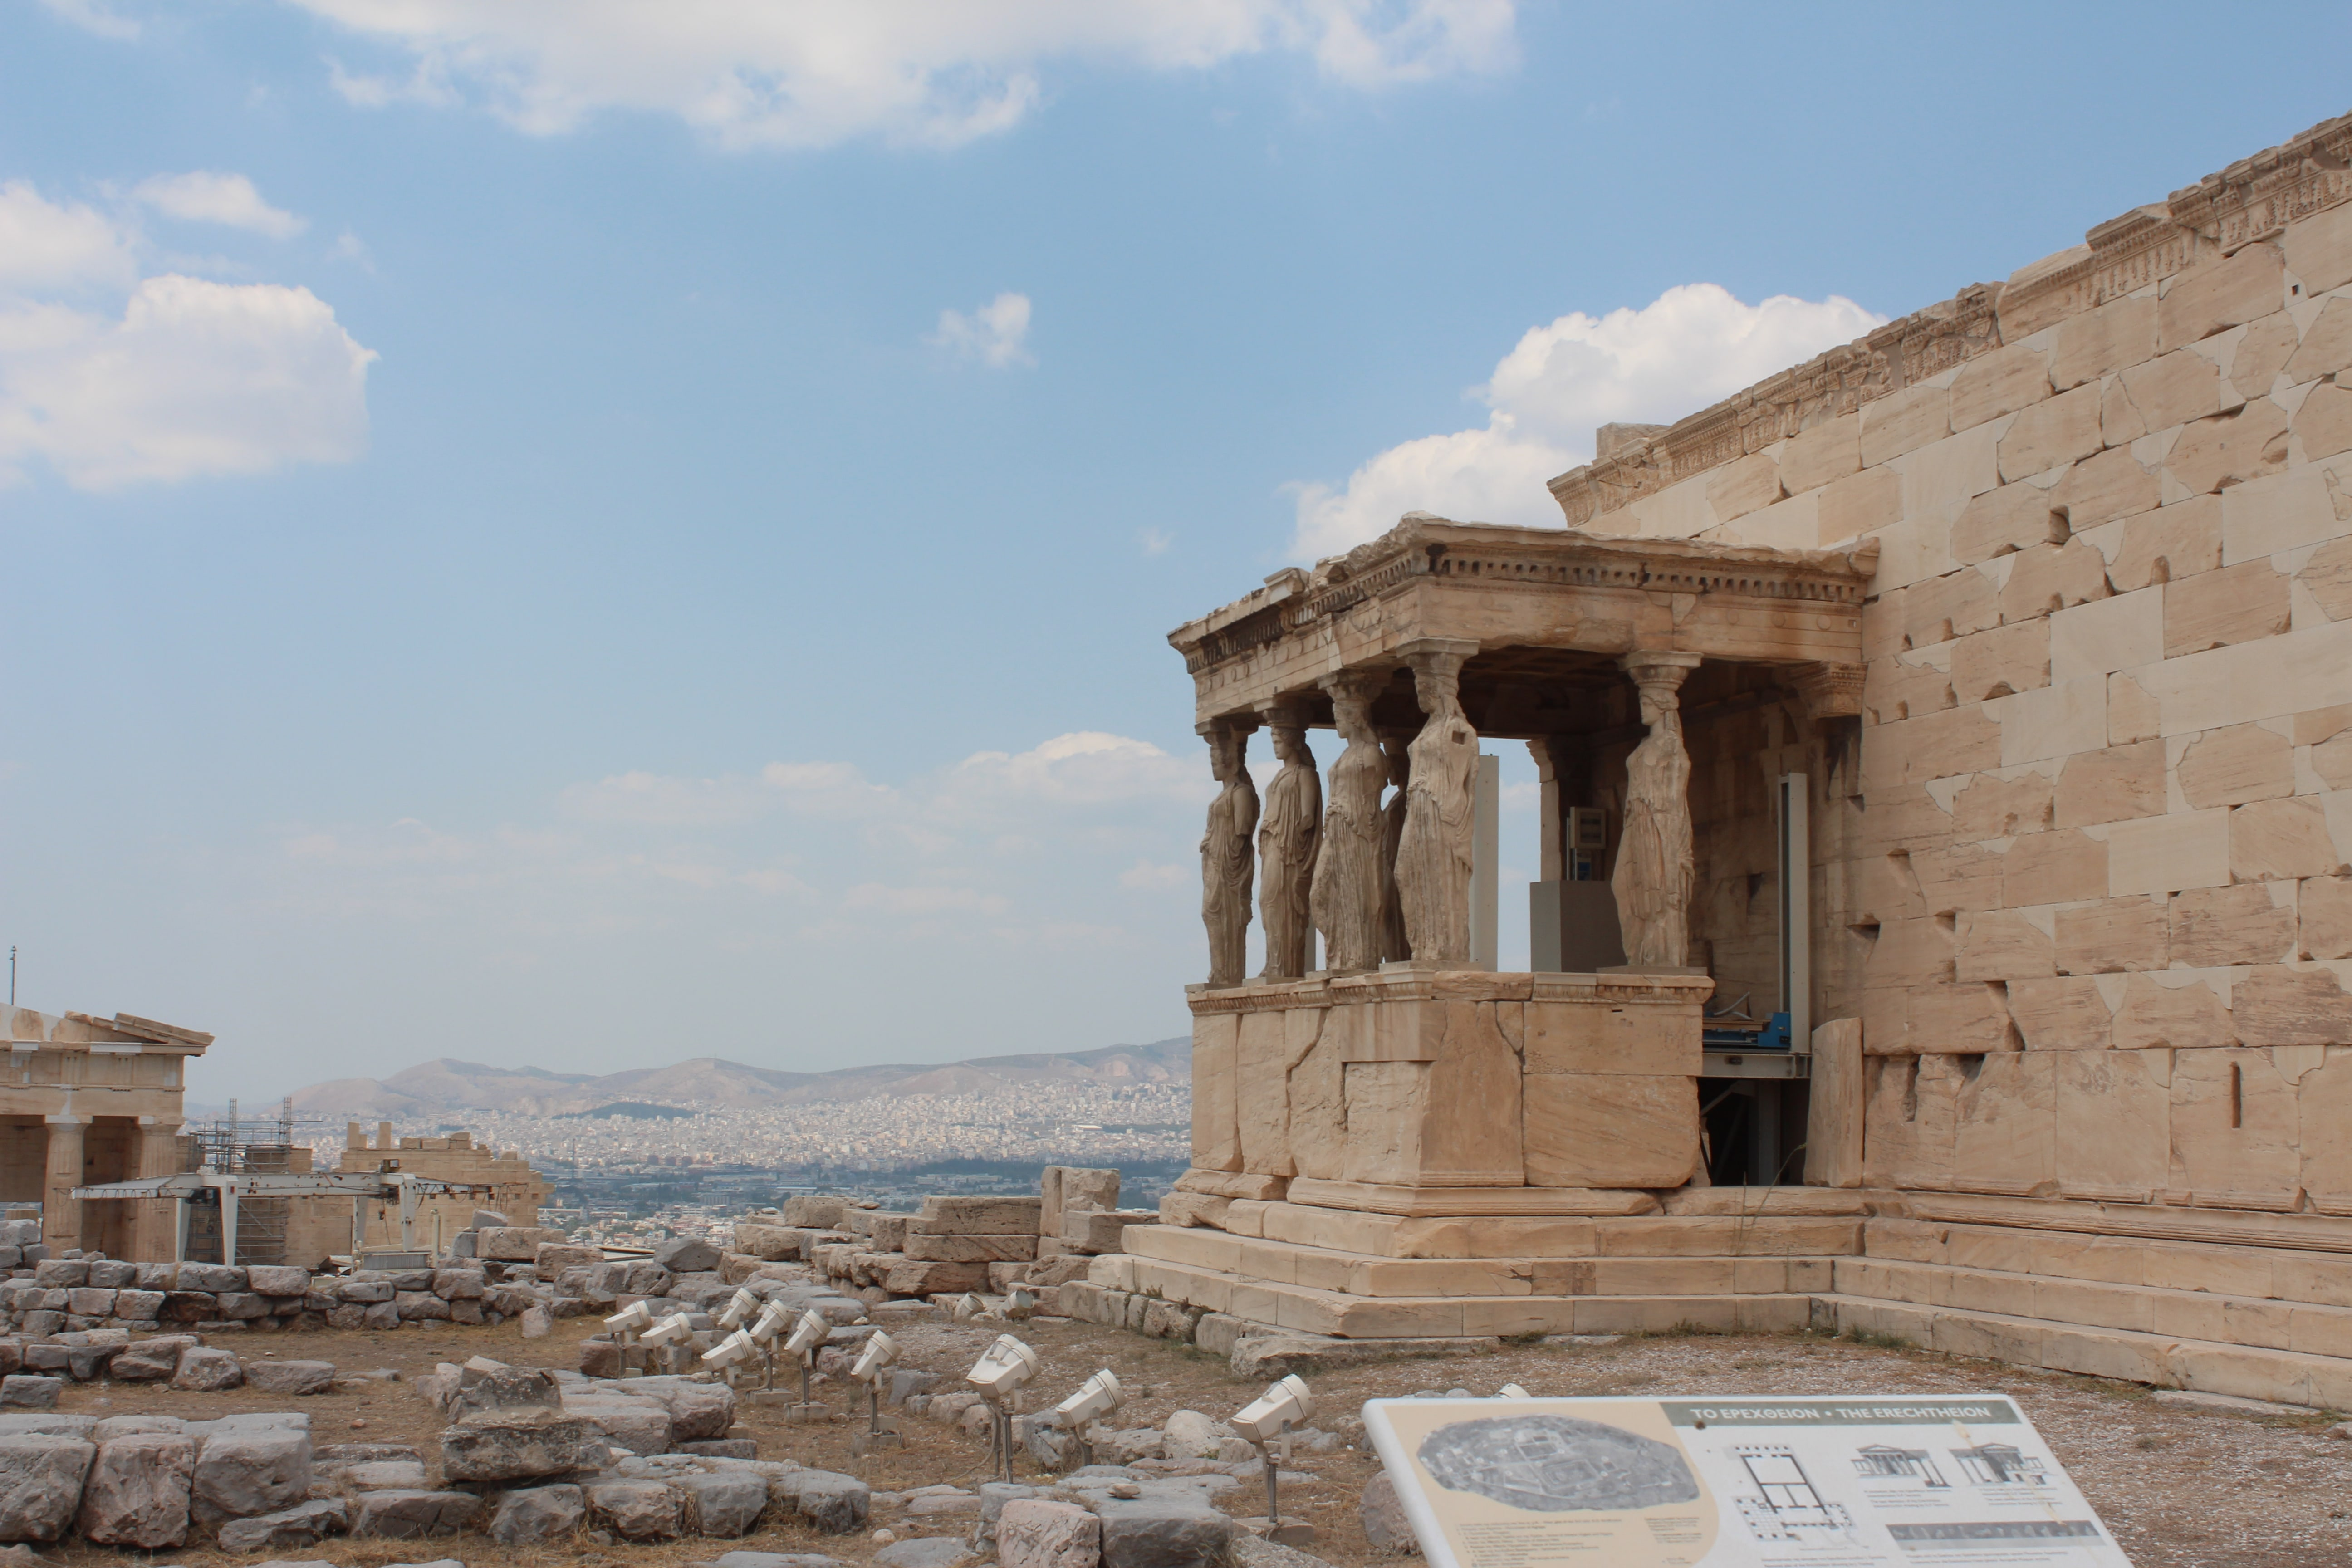 carytids at the erechtheion in the acropolis athens, greece